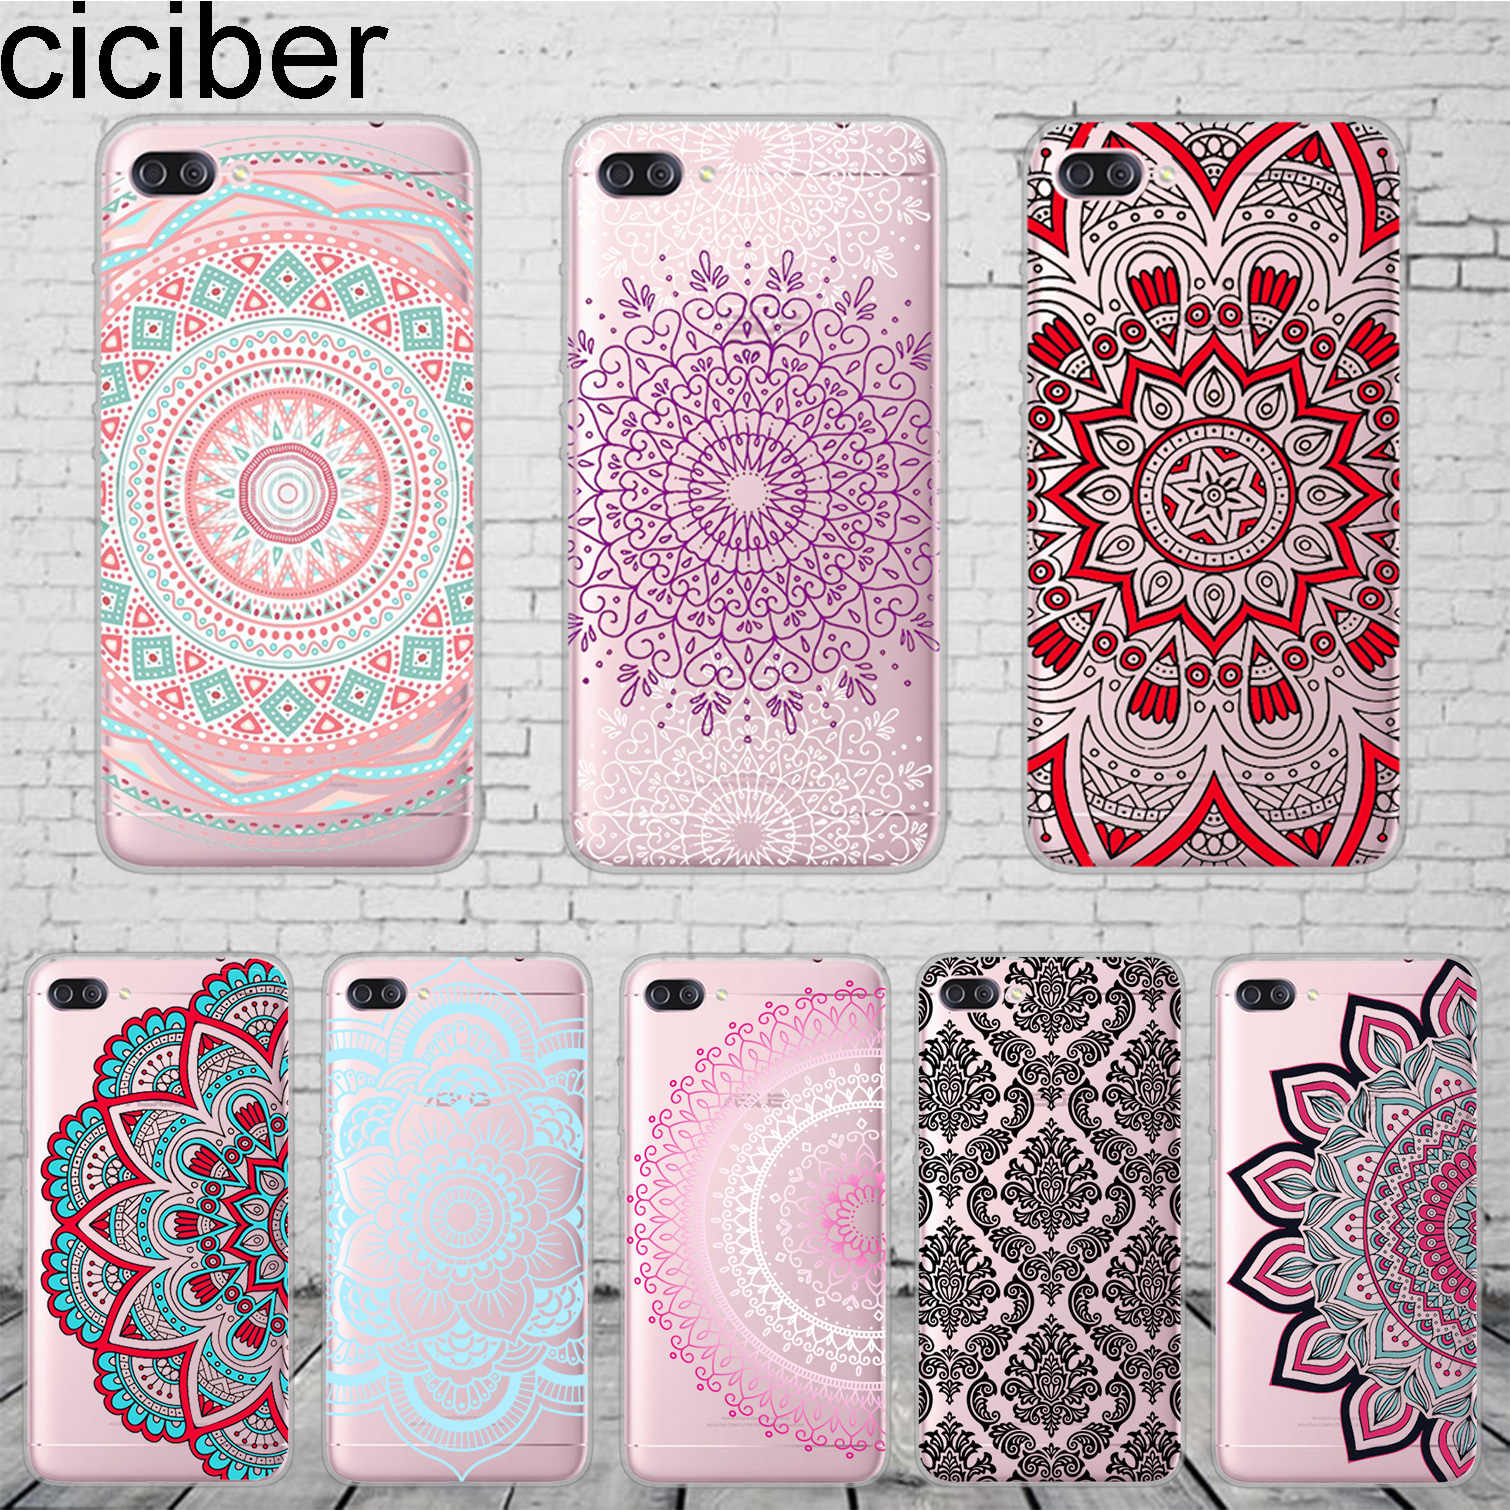 ciciber Perris Flower Pattern Cover For ASUS ZenFone 5 4 3 3S Max Pro Plus Laser Deluxe Selfie Z Q Lite Phone Case TPU Coque